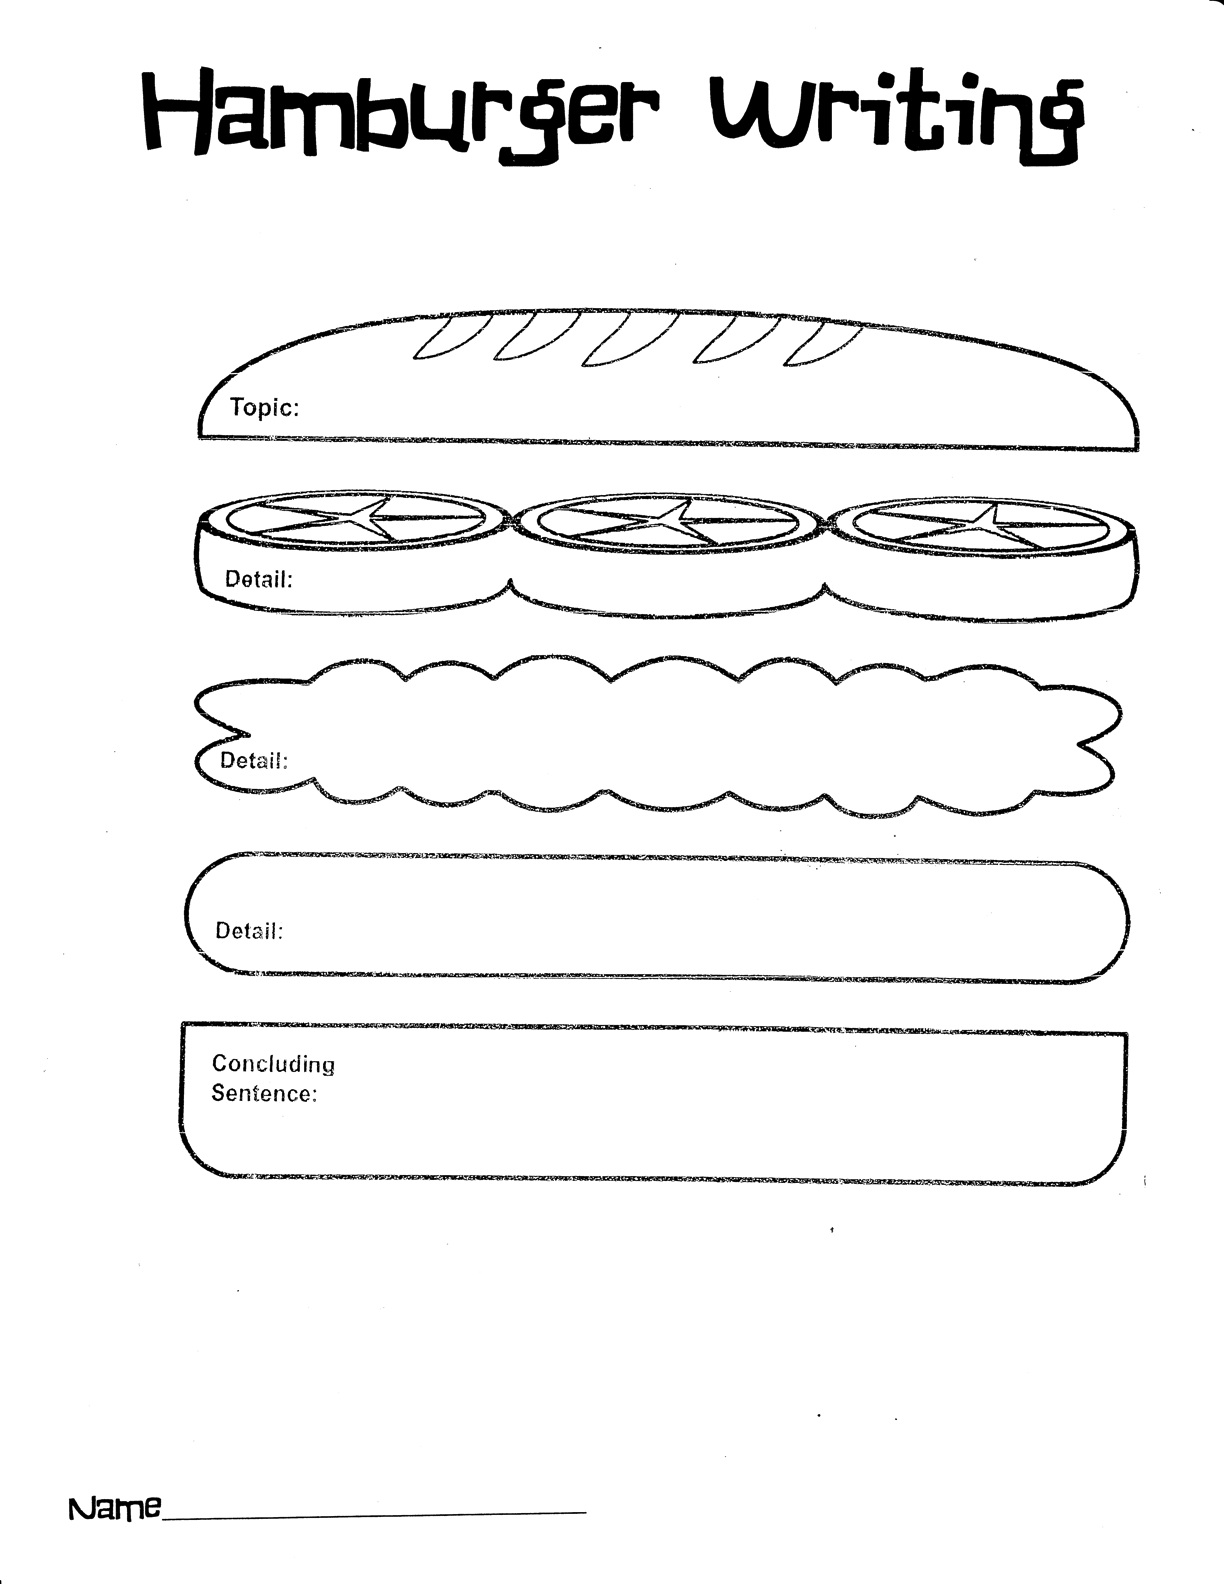 What the teacher wants hamburger writing hamburger writing pronofoot35fo Choice Image